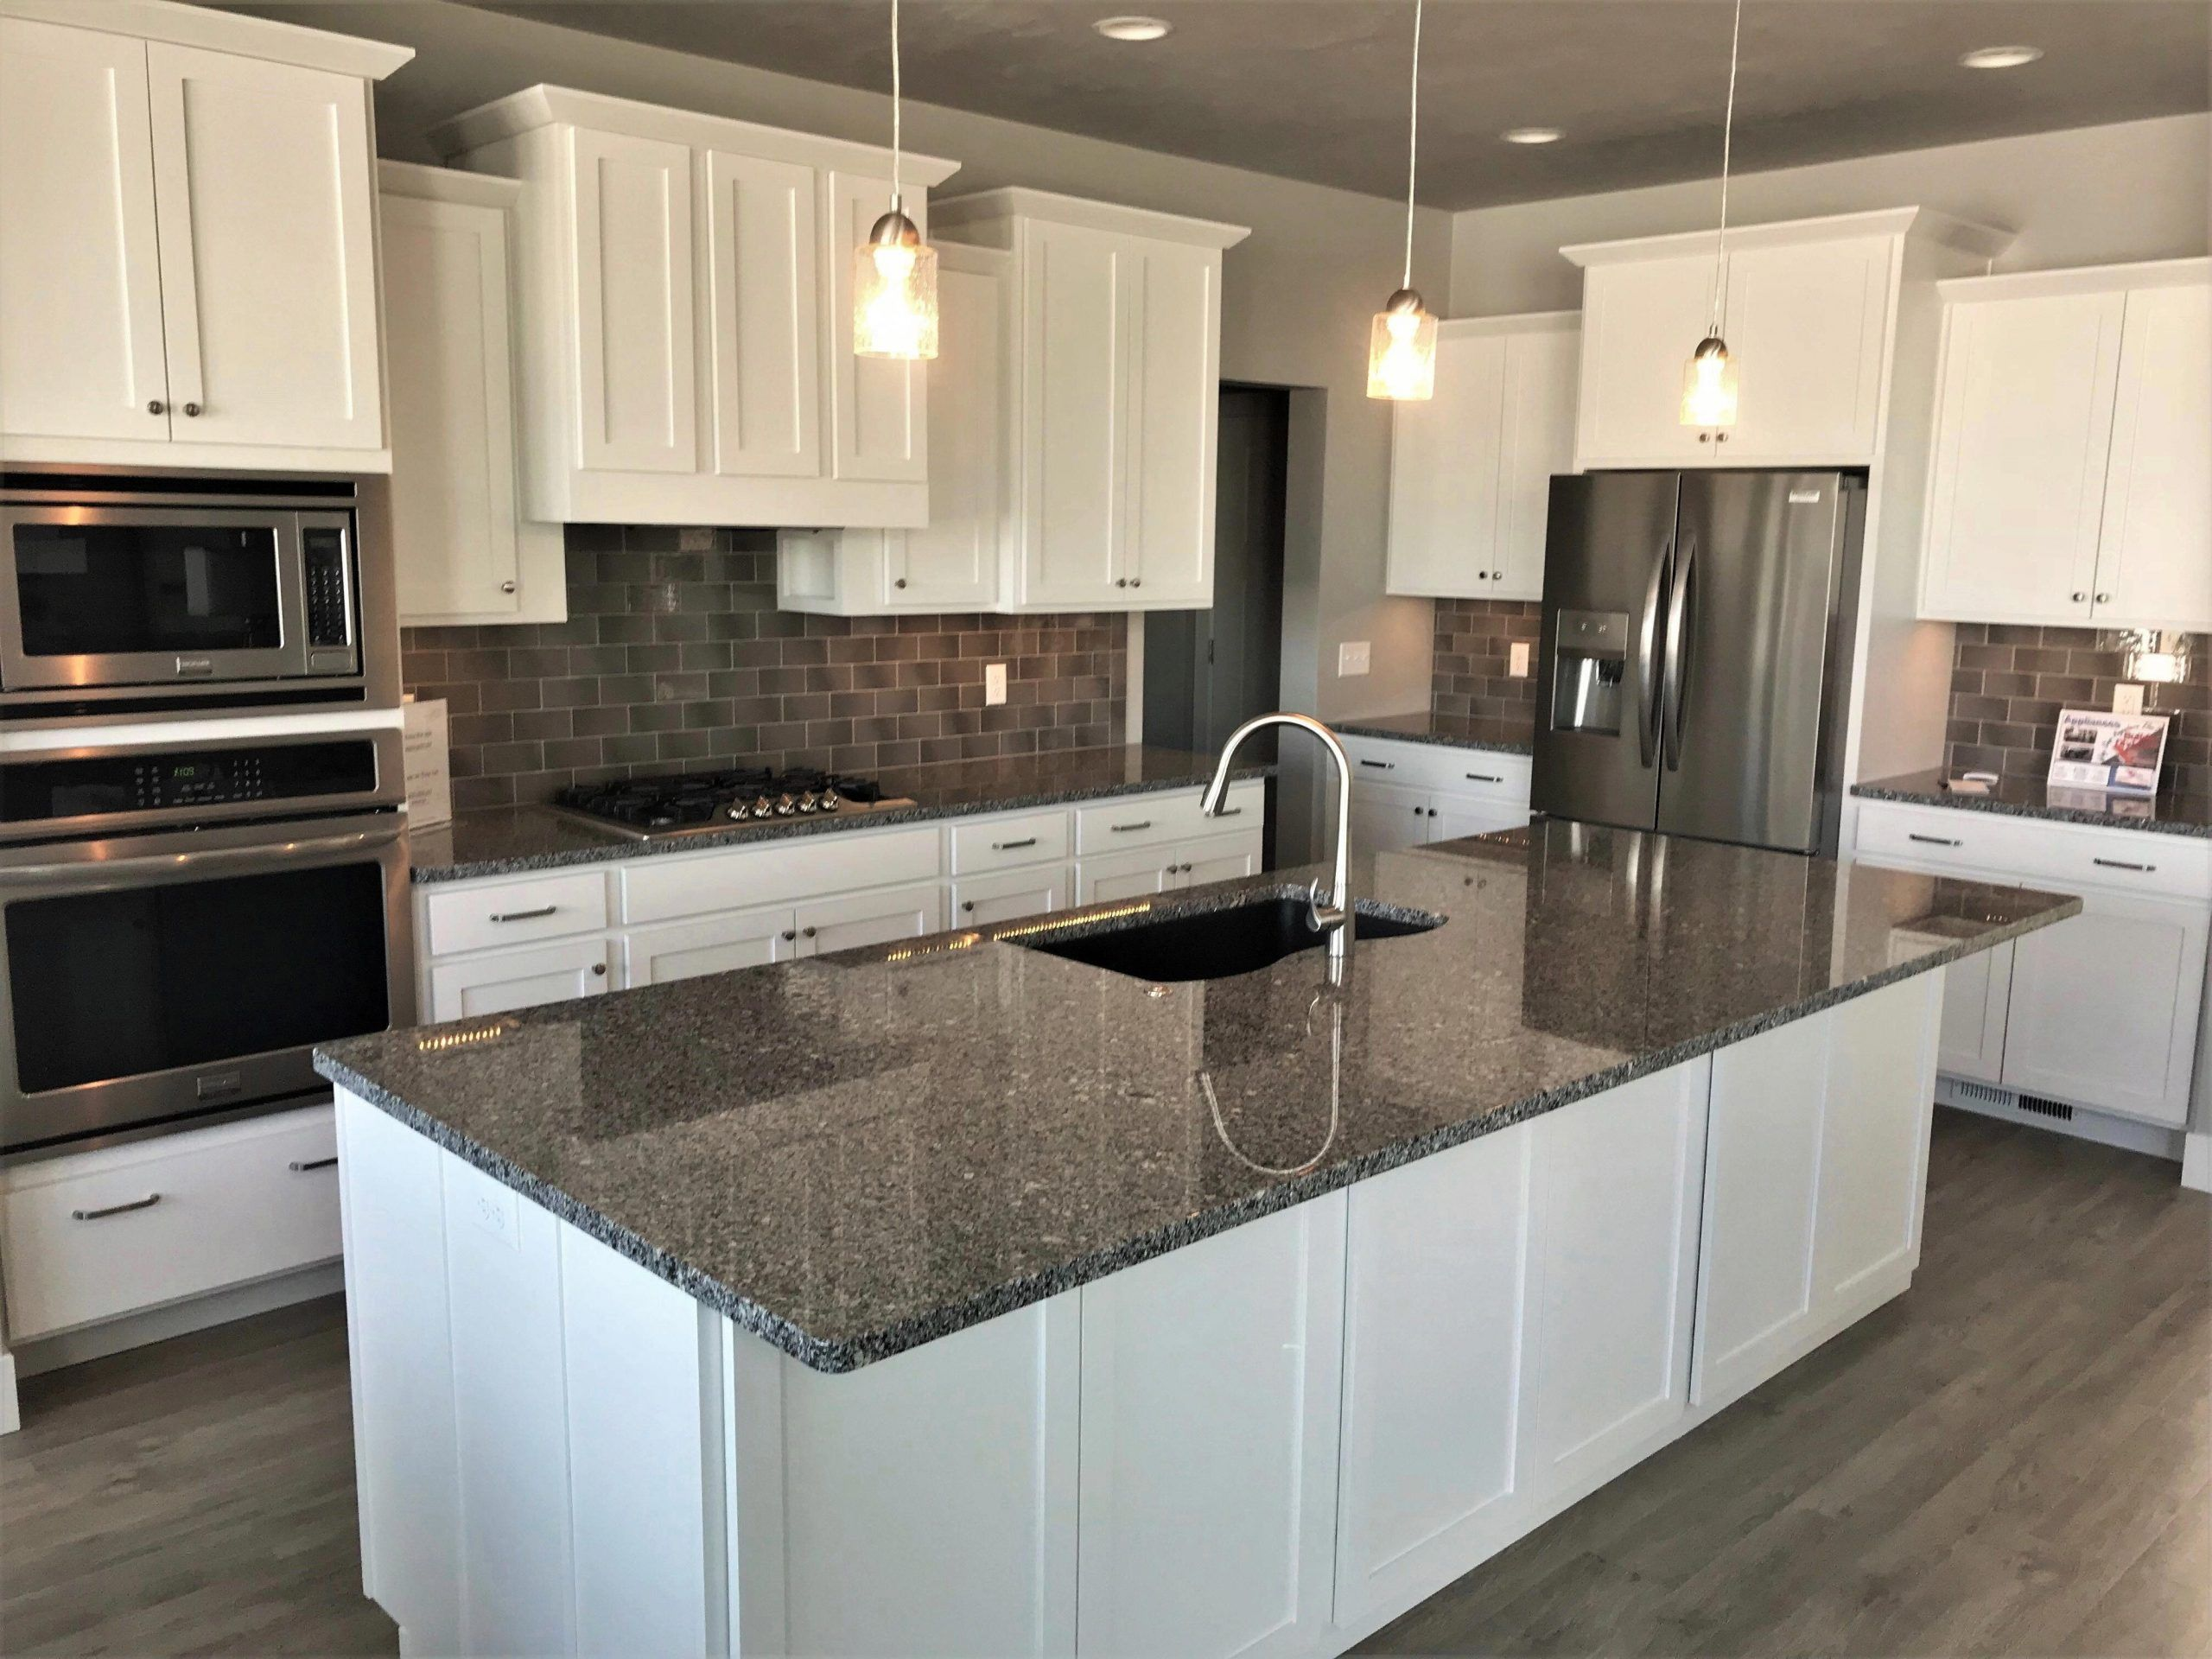 White cabinets with a stunning azul platino granite ... on Backsplash Ideas For White Cabinets And Granite Countertops  id=38264